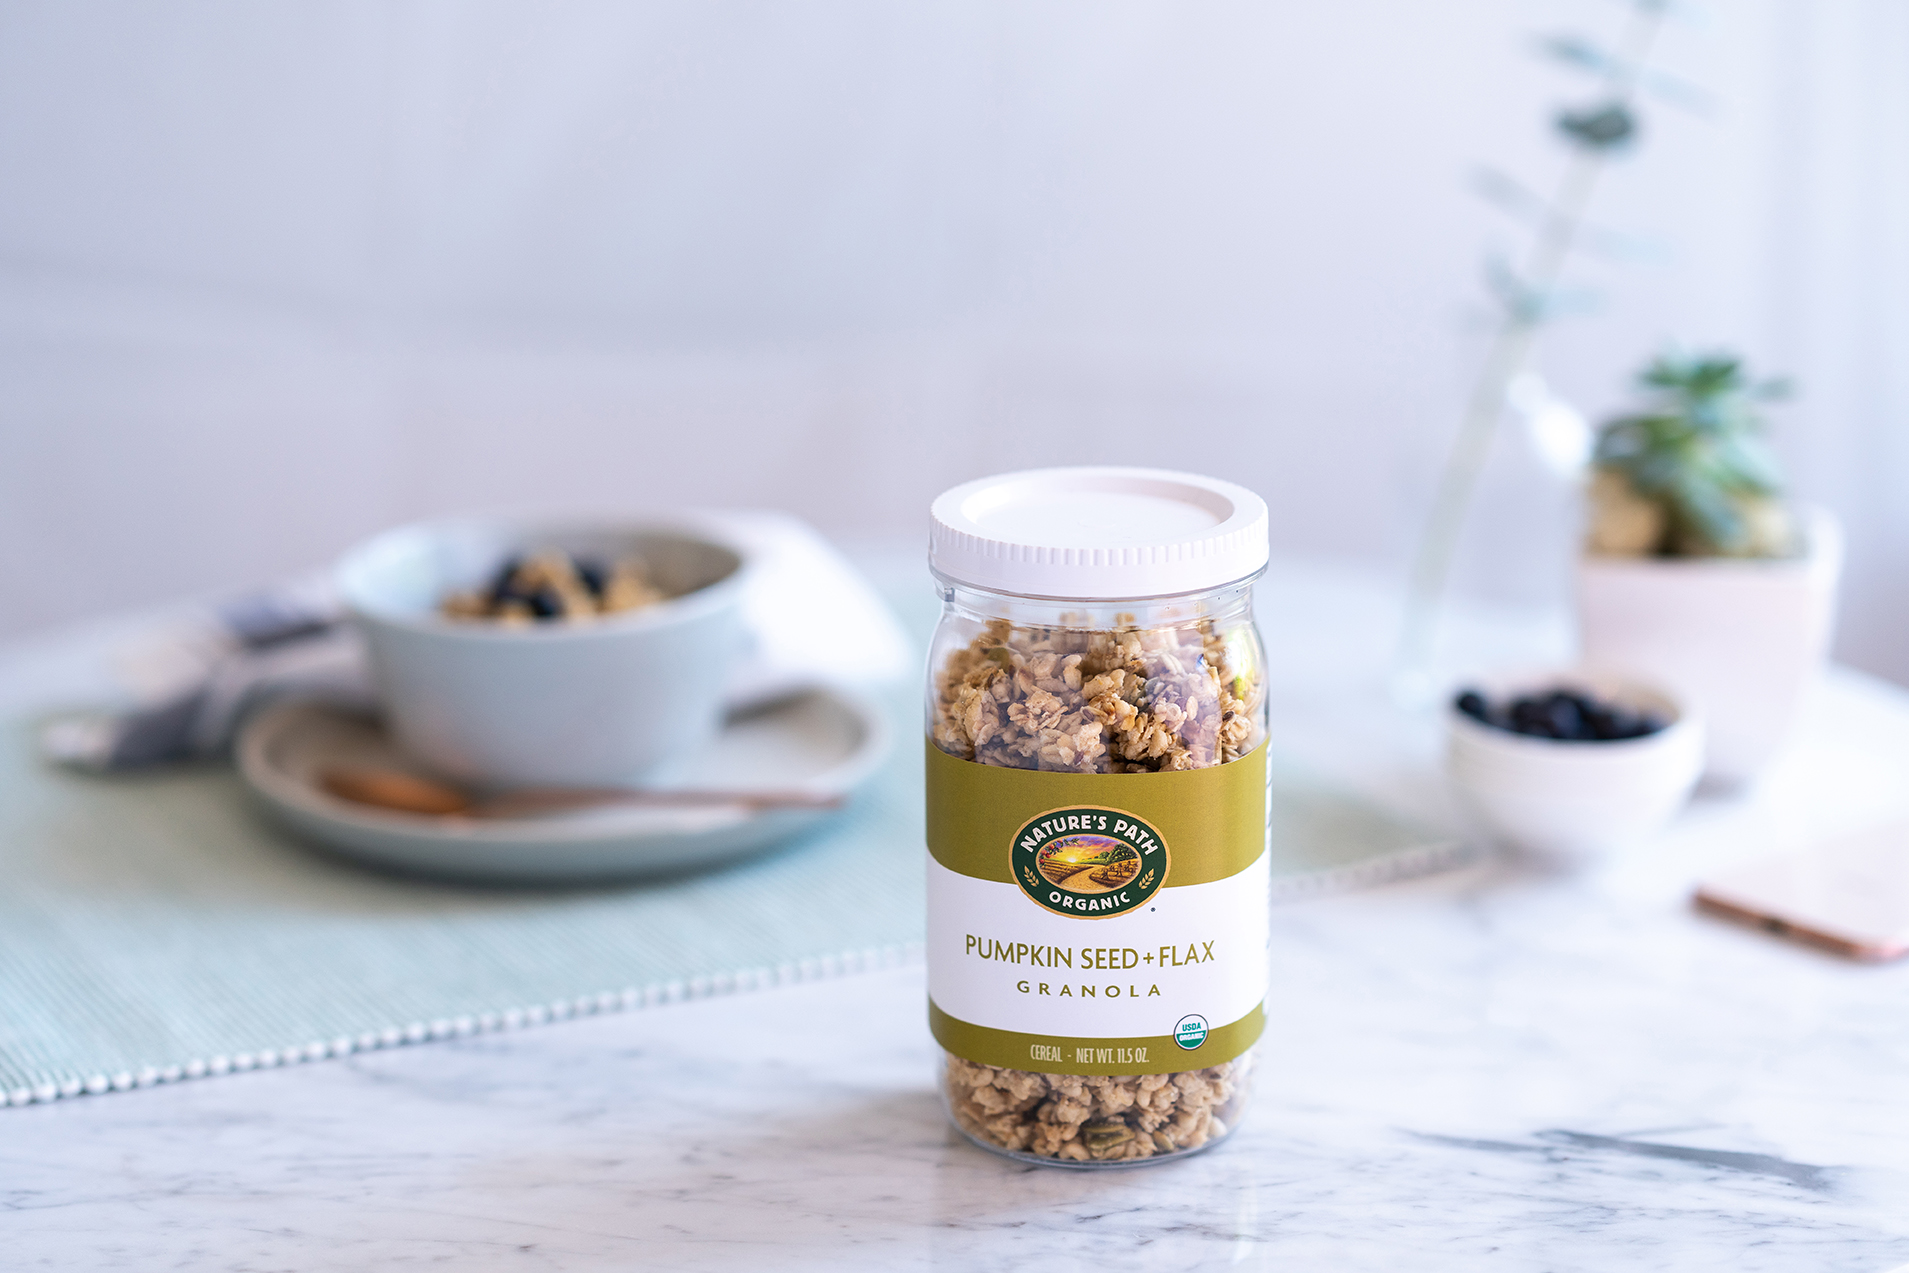 NaturesPath-Container-in-Use-Mason_(2).jpg